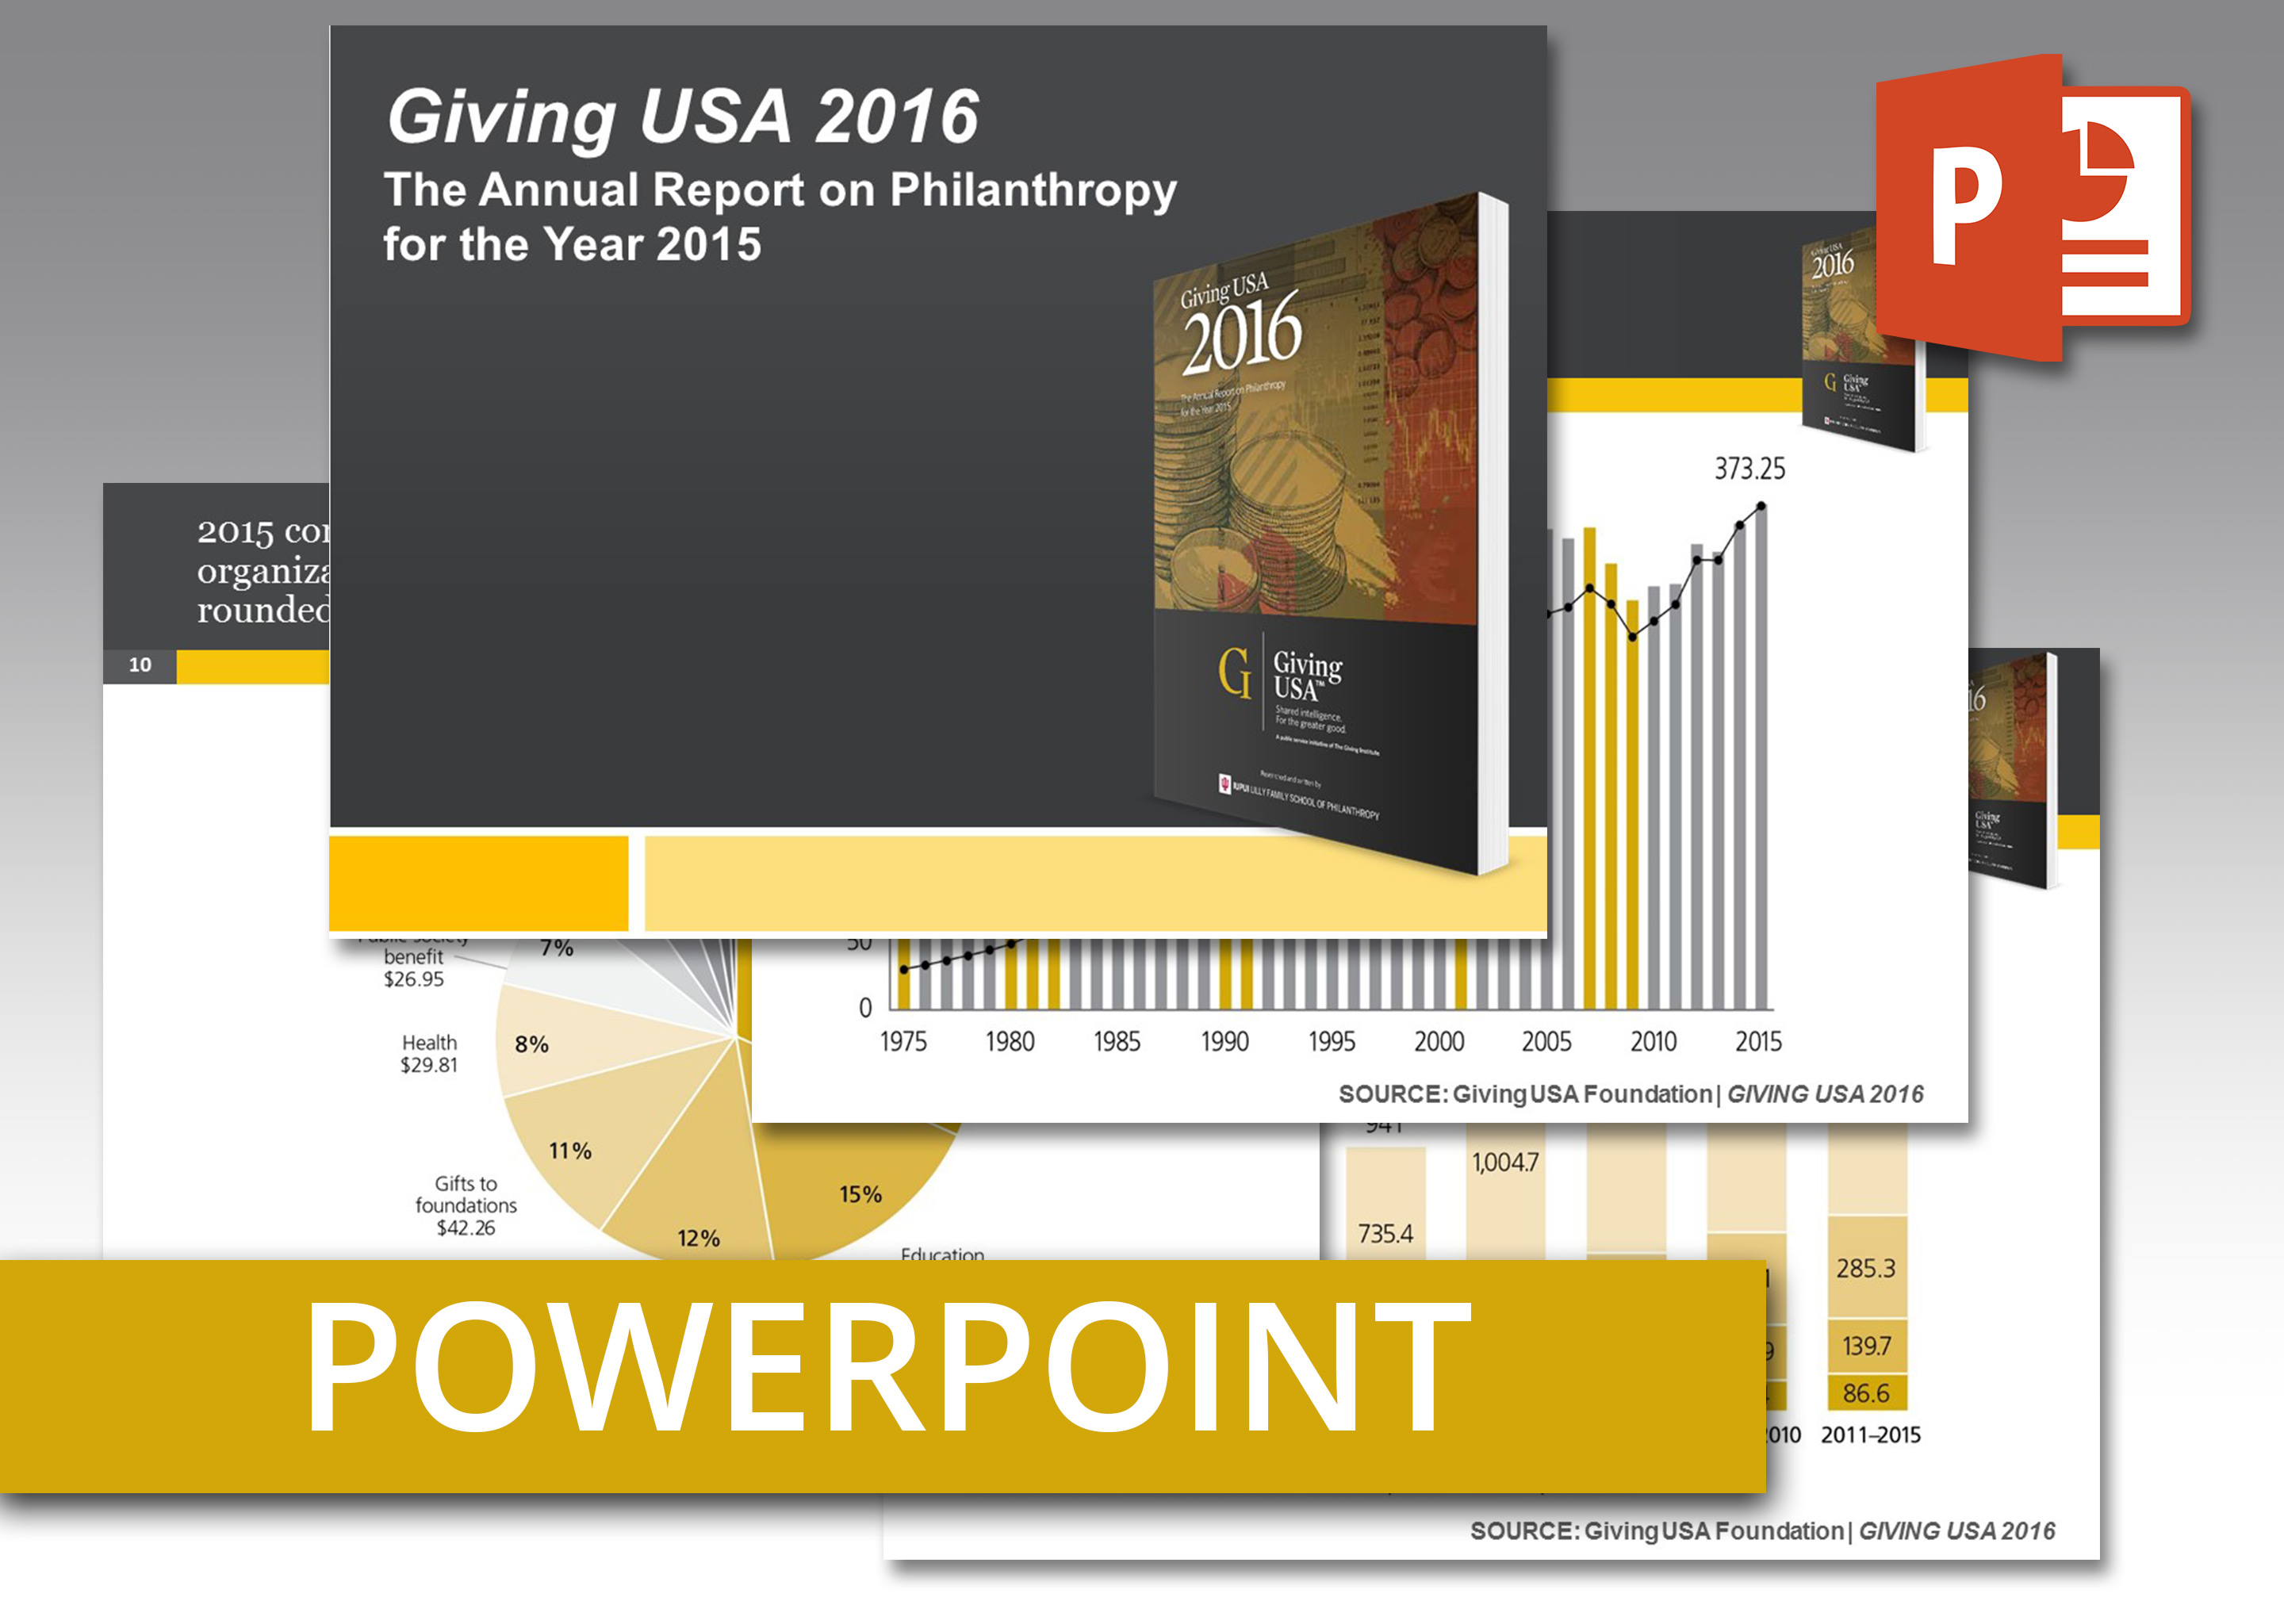 Coolmathgamesus  Unusual Giving Usa  Powerpoint An Easytouse Presentation Of Report  With Fascinating Giving Usa  Powerpoint An Easytouse Presentation Of Report Findings Including Talking Points With Beautiful Page Numbers In Powerpoint Also Insert Video In Powerpoint In Addition Cite Powerpoint And French And Indian War Powerpoint As Well As Embed Timer In Powerpoint Additionally Preposition Powerpoint From Givingusaorg With Coolmathgamesus  Fascinating Giving Usa  Powerpoint An Easytouse Presentation Of Report  With Beautiful Giving Usa  Powerpoint An Easytouse Presentation Of Report Findings Including Talking Points And Unusual Page Numbers In Powerpoint Also Insert Video In Powerpoint In Addition Cite Powerpoint From Givingusaorg